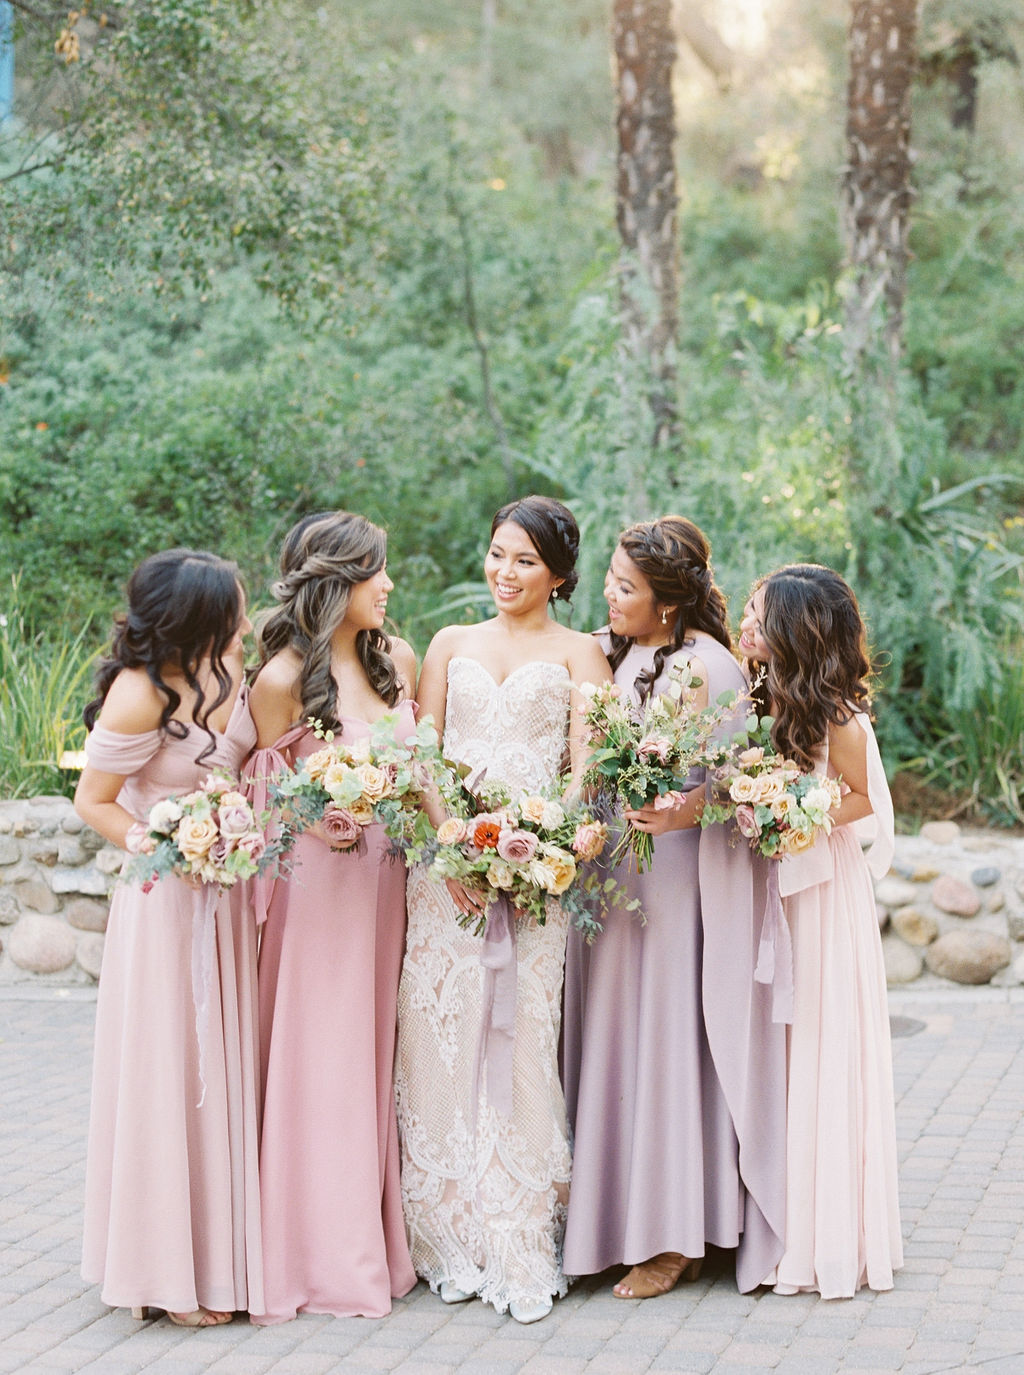 Bridesmaids Bouquets by Finding Flora